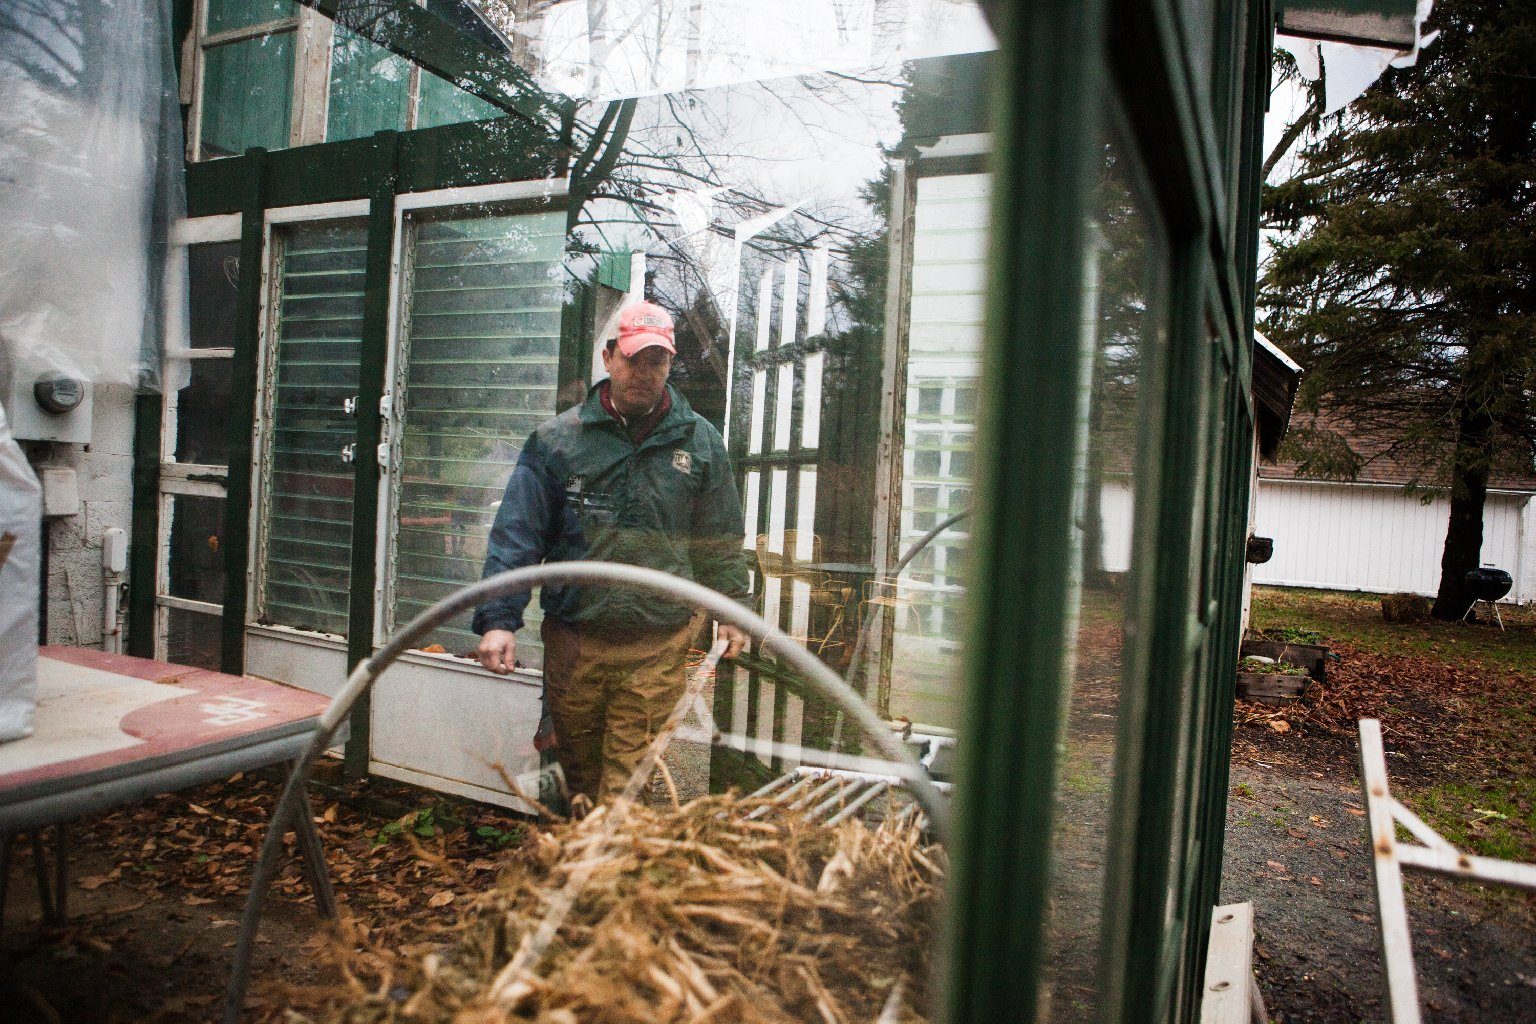 Guerre built this greenhouse out of recycled materials like old windows and doors. Photo: Zac Visco for NPR